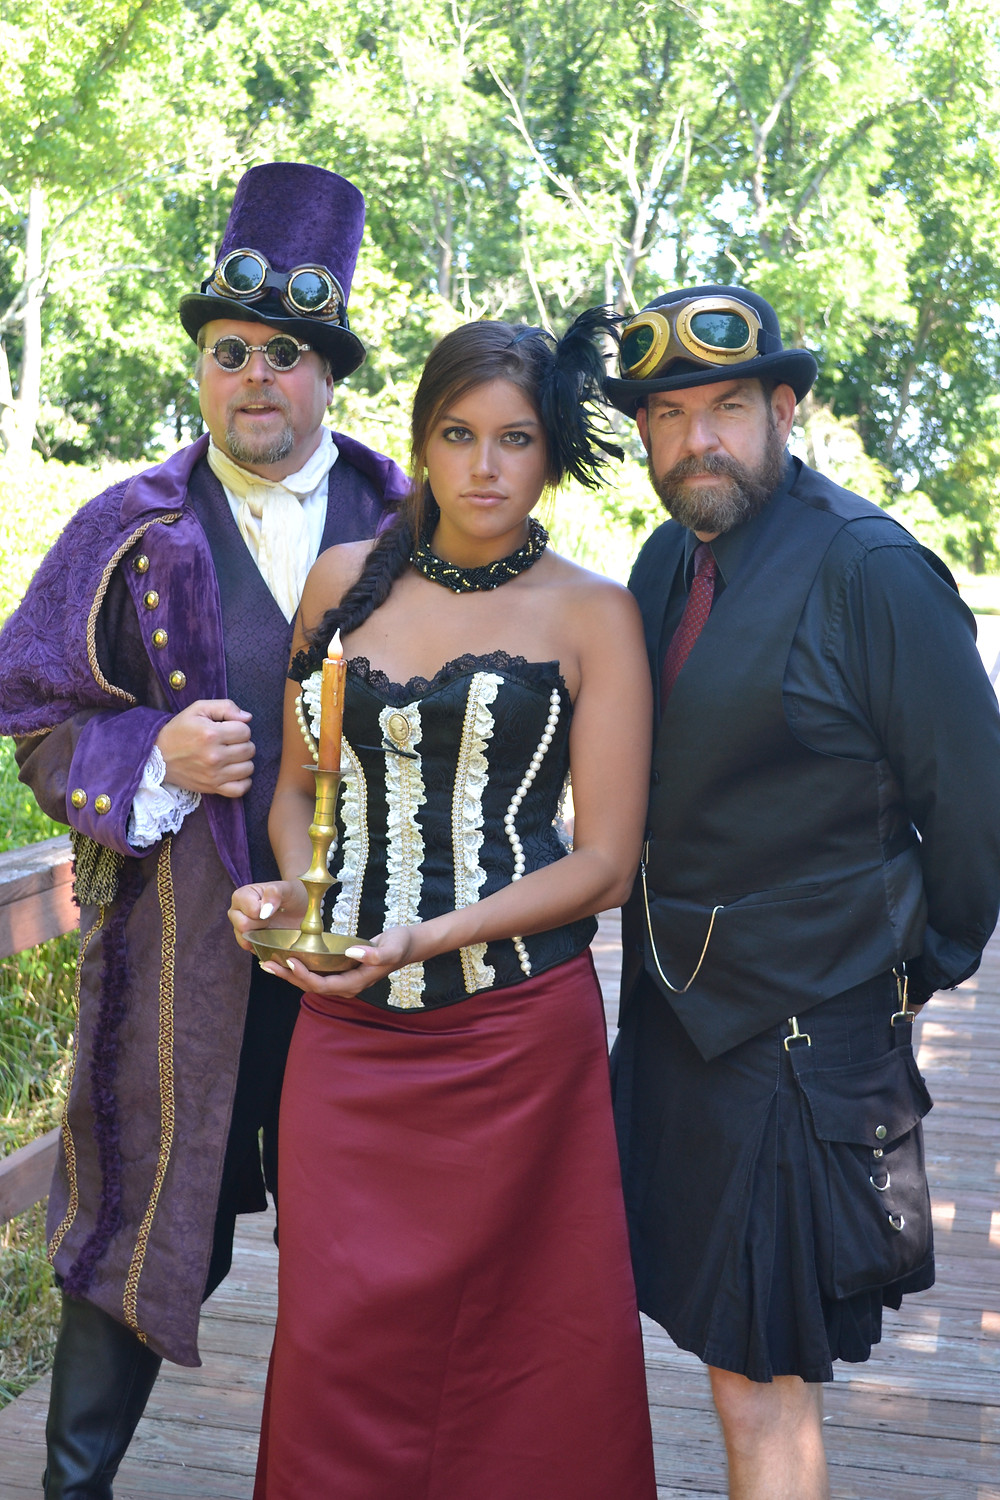 officiant for themed wedding 2